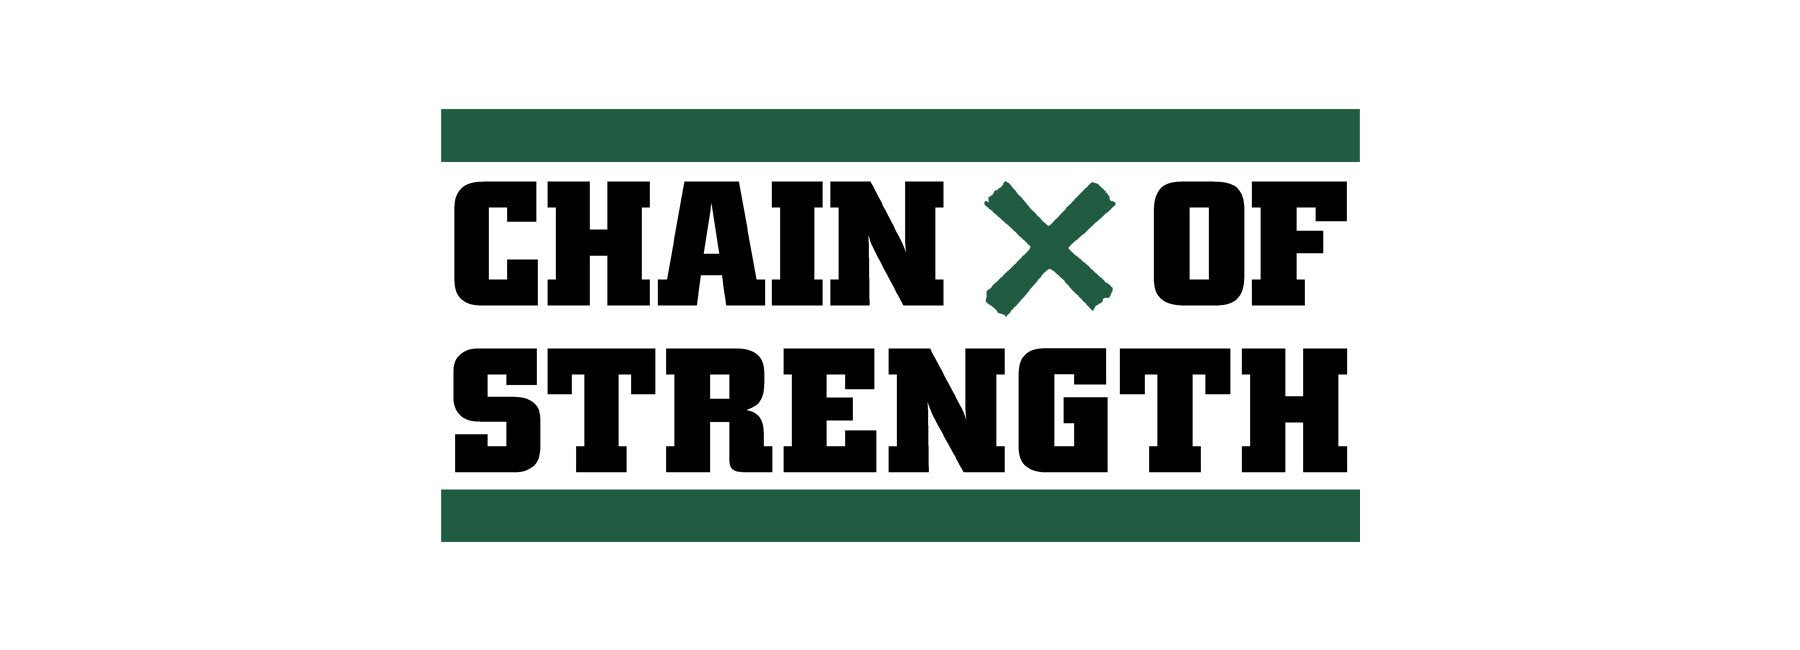 Official Chain Of Strength band merch only available on allinmerch.com